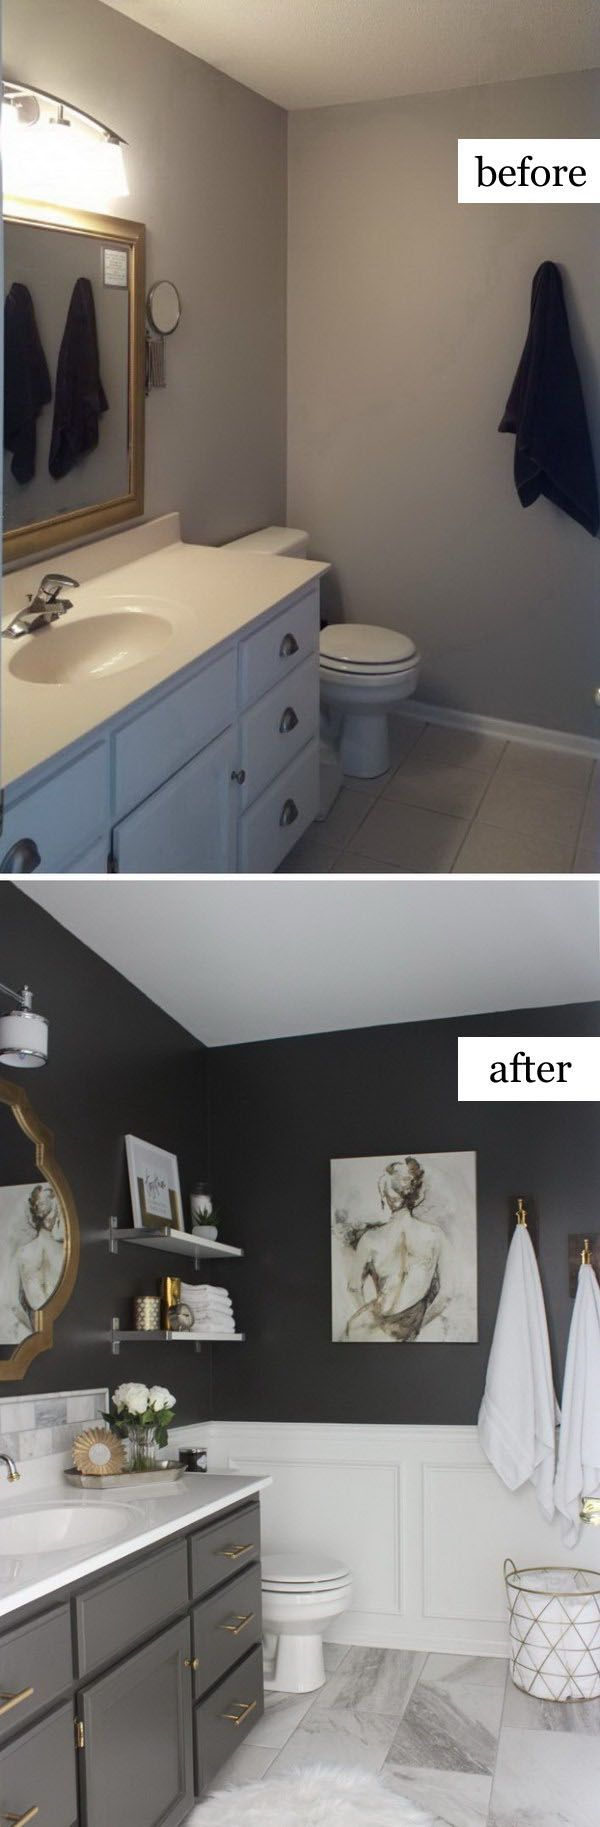 Bathroom Remodeling Ideas Pinterest best 20+ small bathroom remodeling ideas on pinterest | half